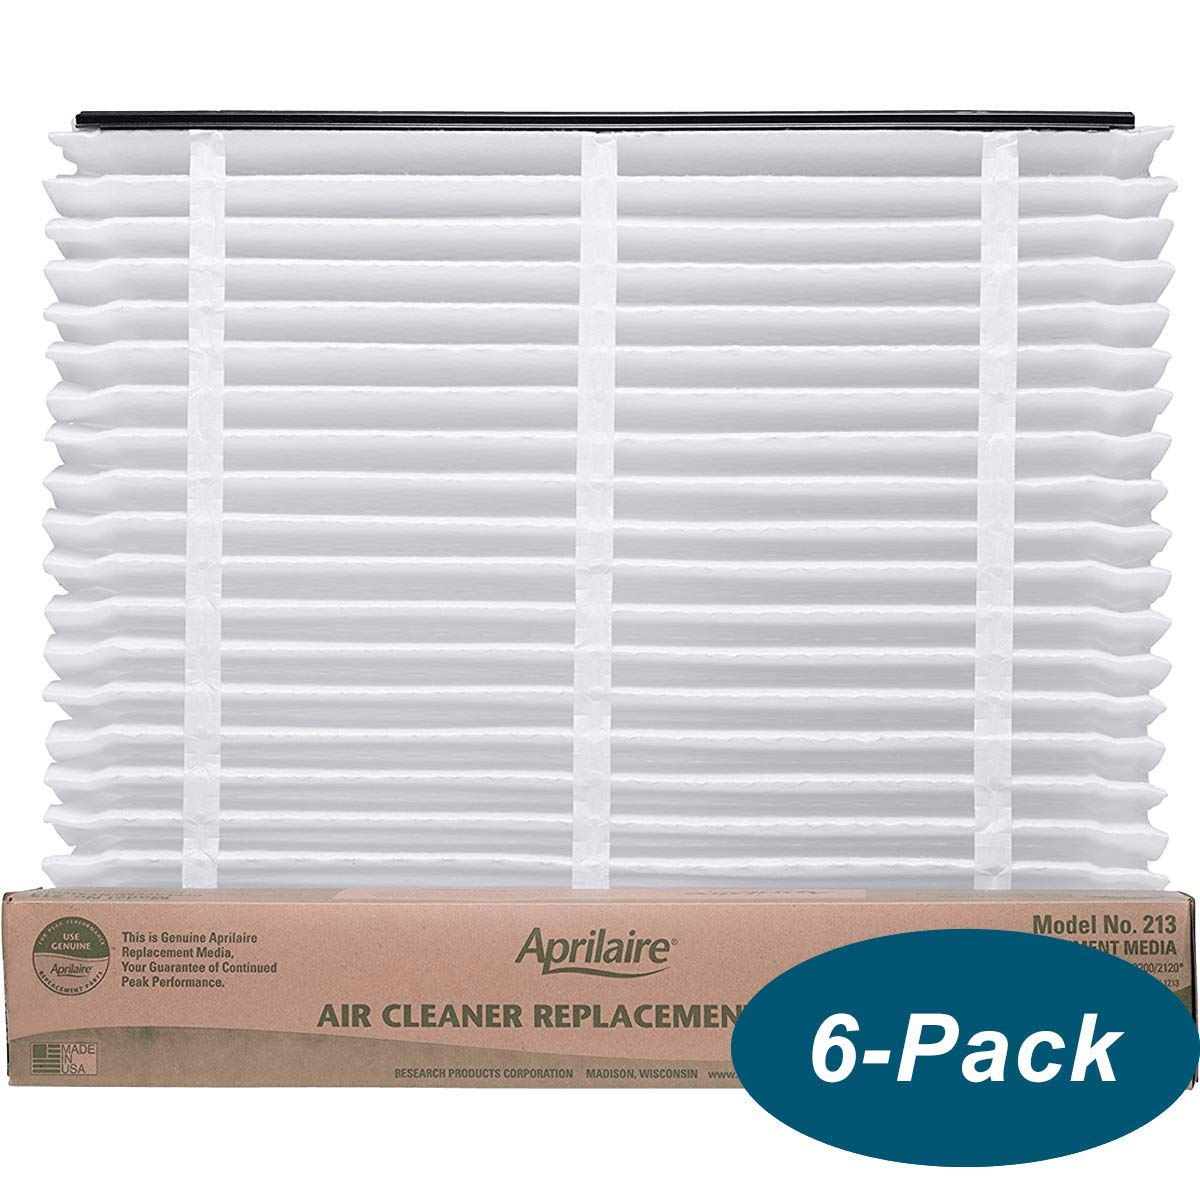 """6 Pack of Aprilaire 213 MERV 13 Replacement Filter Media. 20"""" x 26"""" x 4"""". Brand New Genuine Aprilaire Product."""